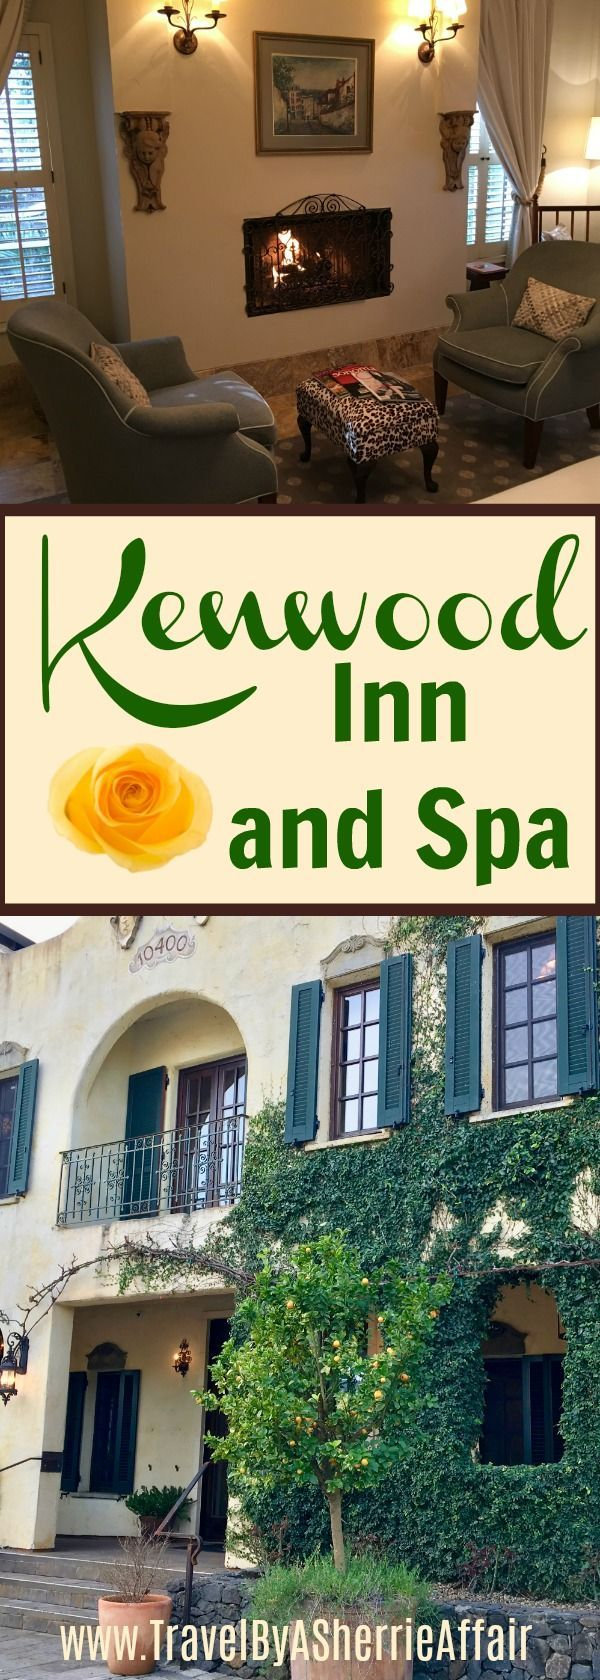 Kenwood Inn and Spa in Sonoma California is a spectacular choice for a Wine Country Holiday.  You can enjoy your time in front of fireplaces, enjoying the pools, relaxing and receiving treatments in the spa.   #KenwoodInn #Sonoma #California #WineCountry #Wine #Spa #Inn #Holiday #Hotel